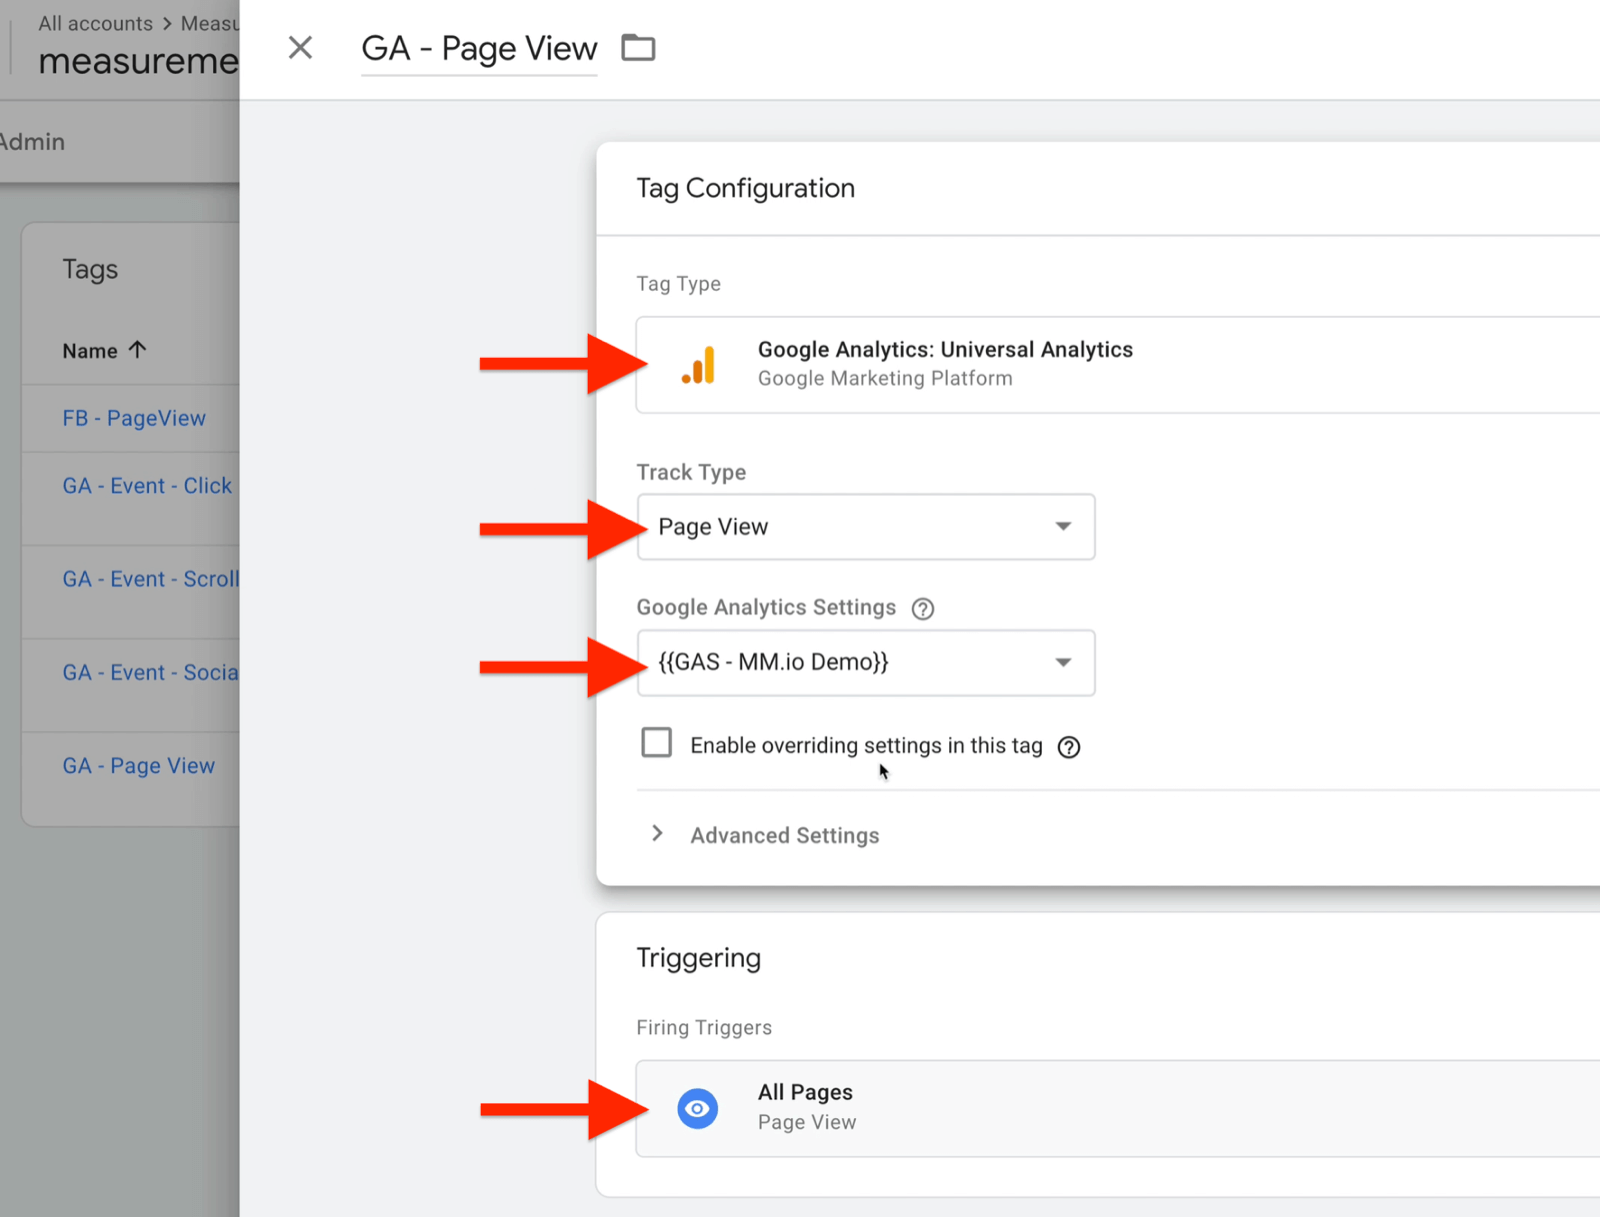 example google tag manager tag configuration called ga - page view with tag type set to google analytics: universal analytics, track type as page view, google analytics settings as {{gas - mm.io demo}}, with firing triggers set to all pages